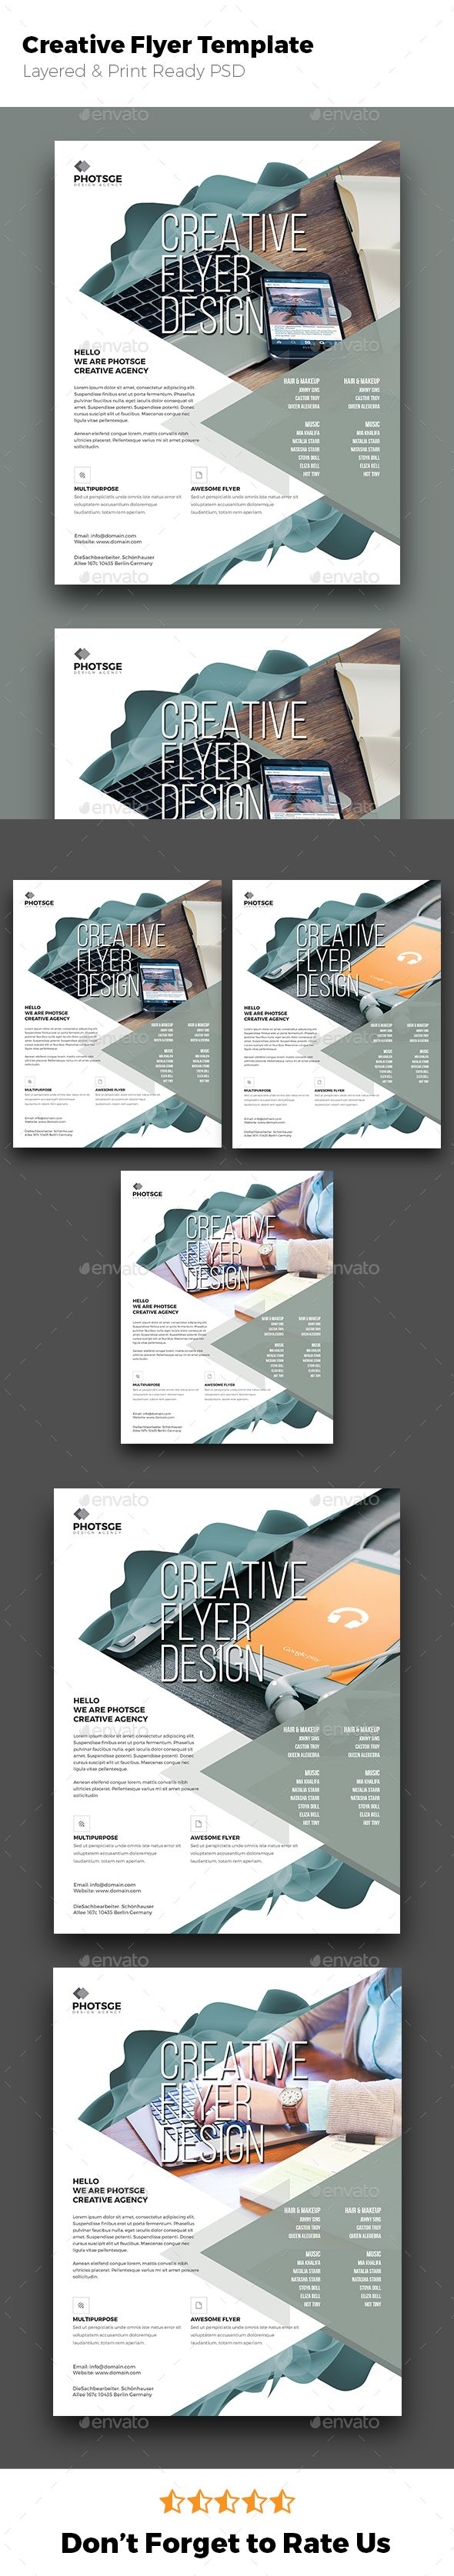 Creative Flyer Design, 	black, blue, both side design, business card, creative, designer, flyer, graphic, green, landscape, logo, magagine, modern design, official, print, professional, simple, standard, web, white